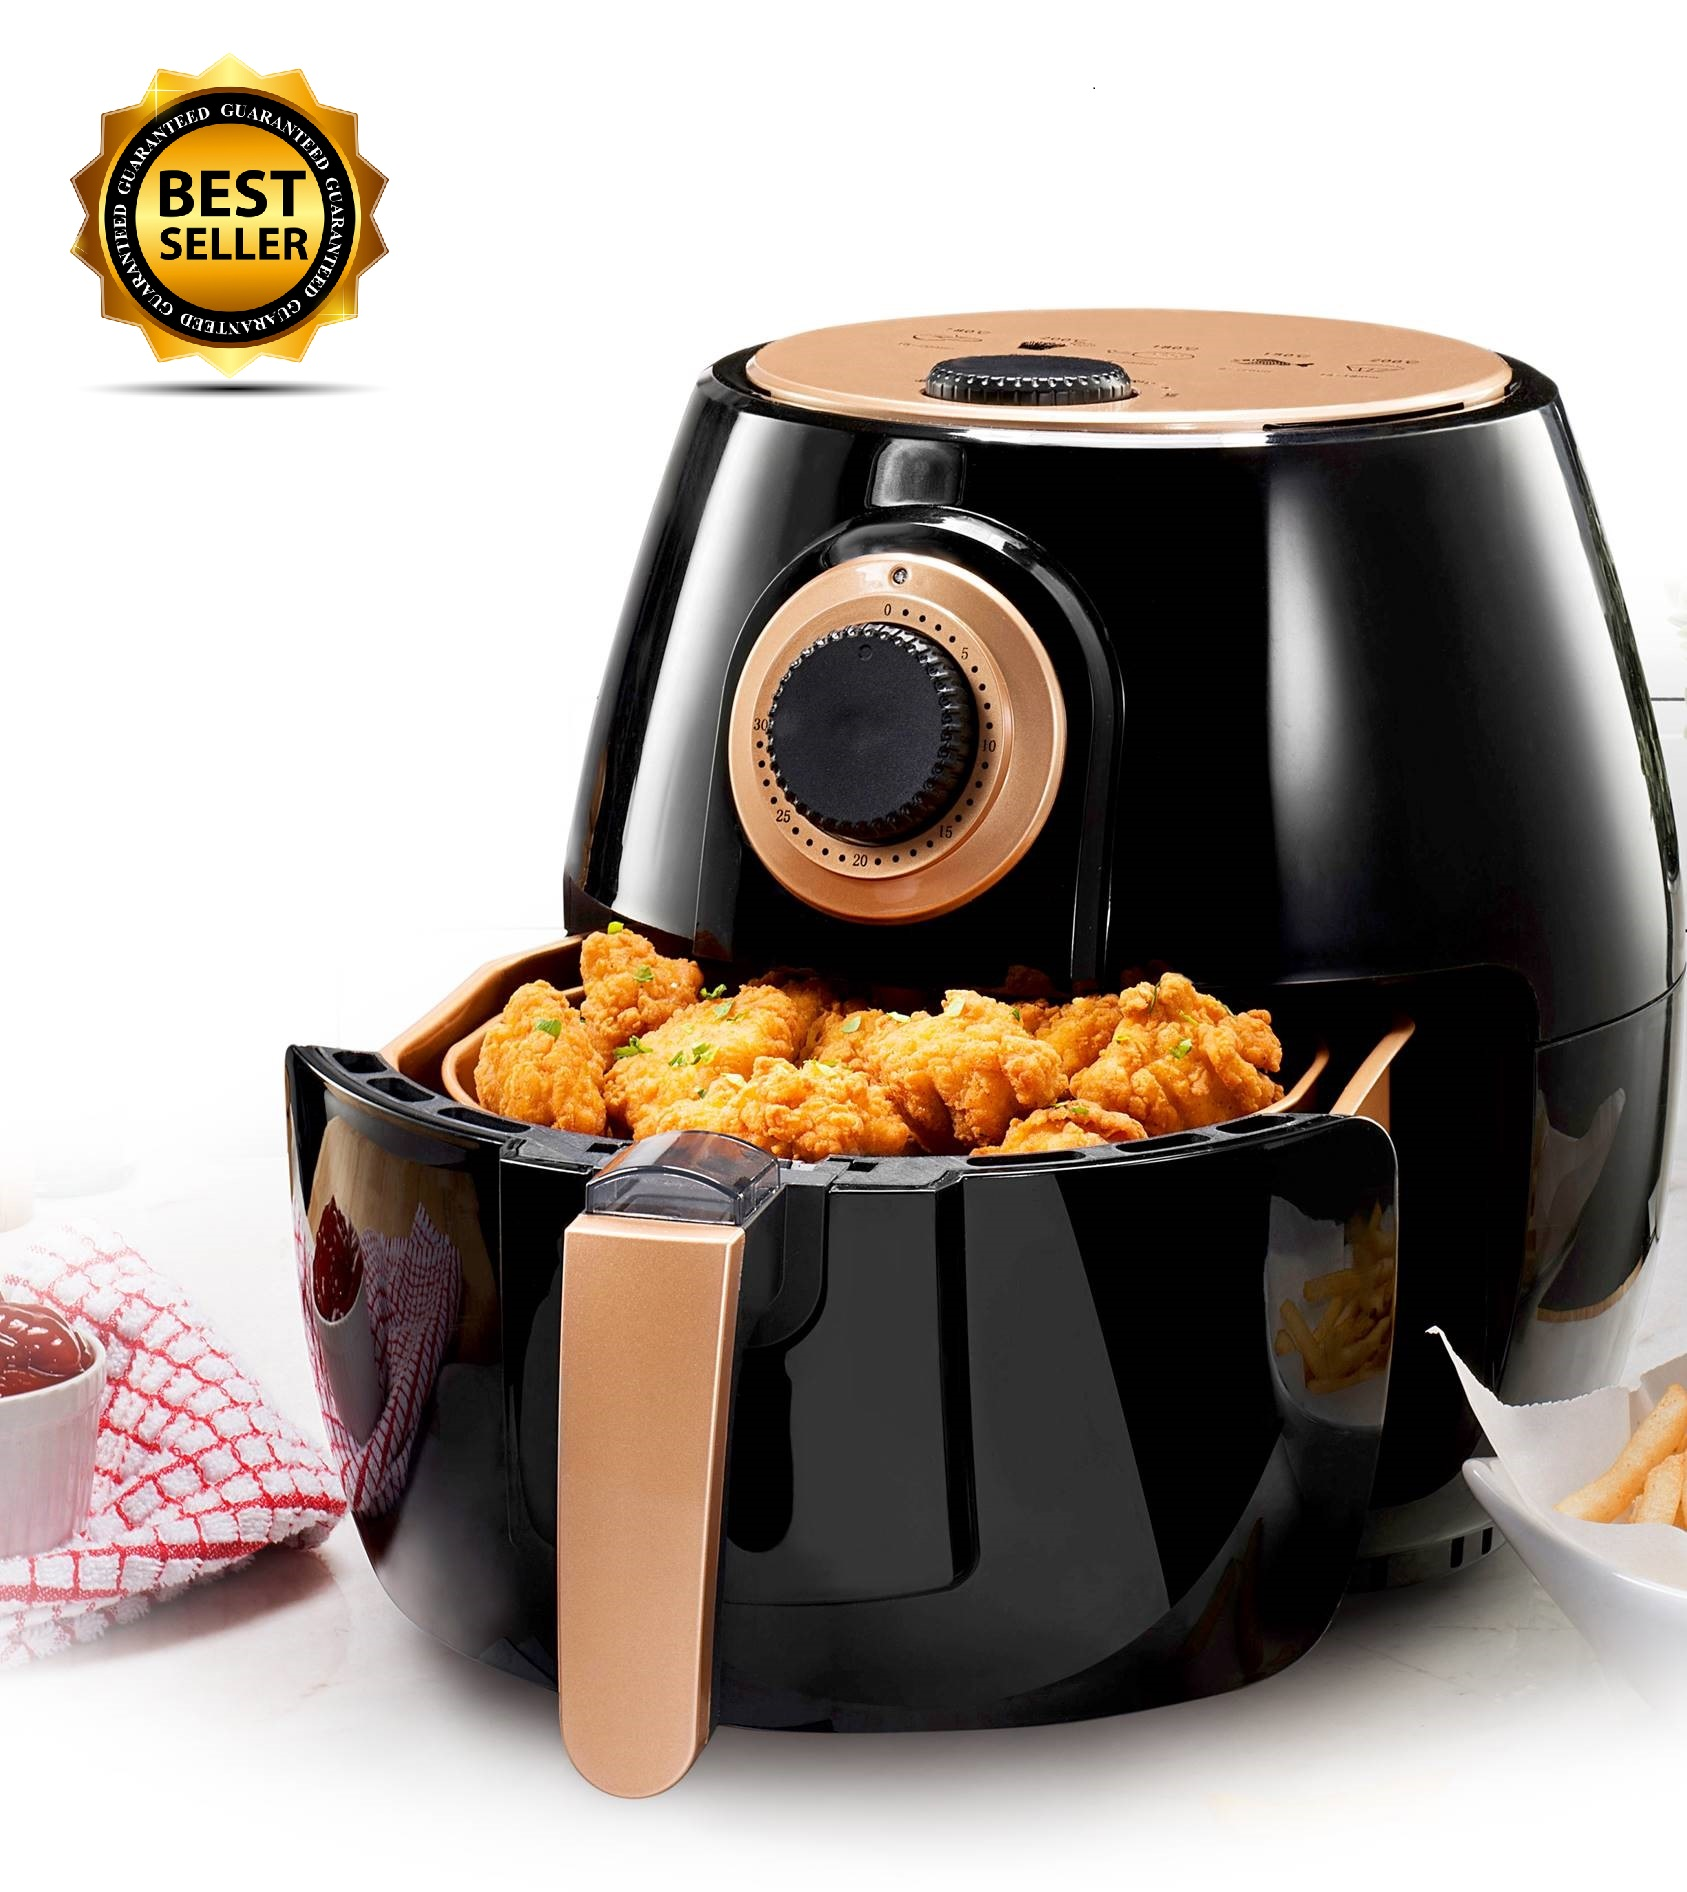 Gotham Steel Air Fryer 4 Quart with Included Presets, Temperature Control and Timer – As Seen on TV!